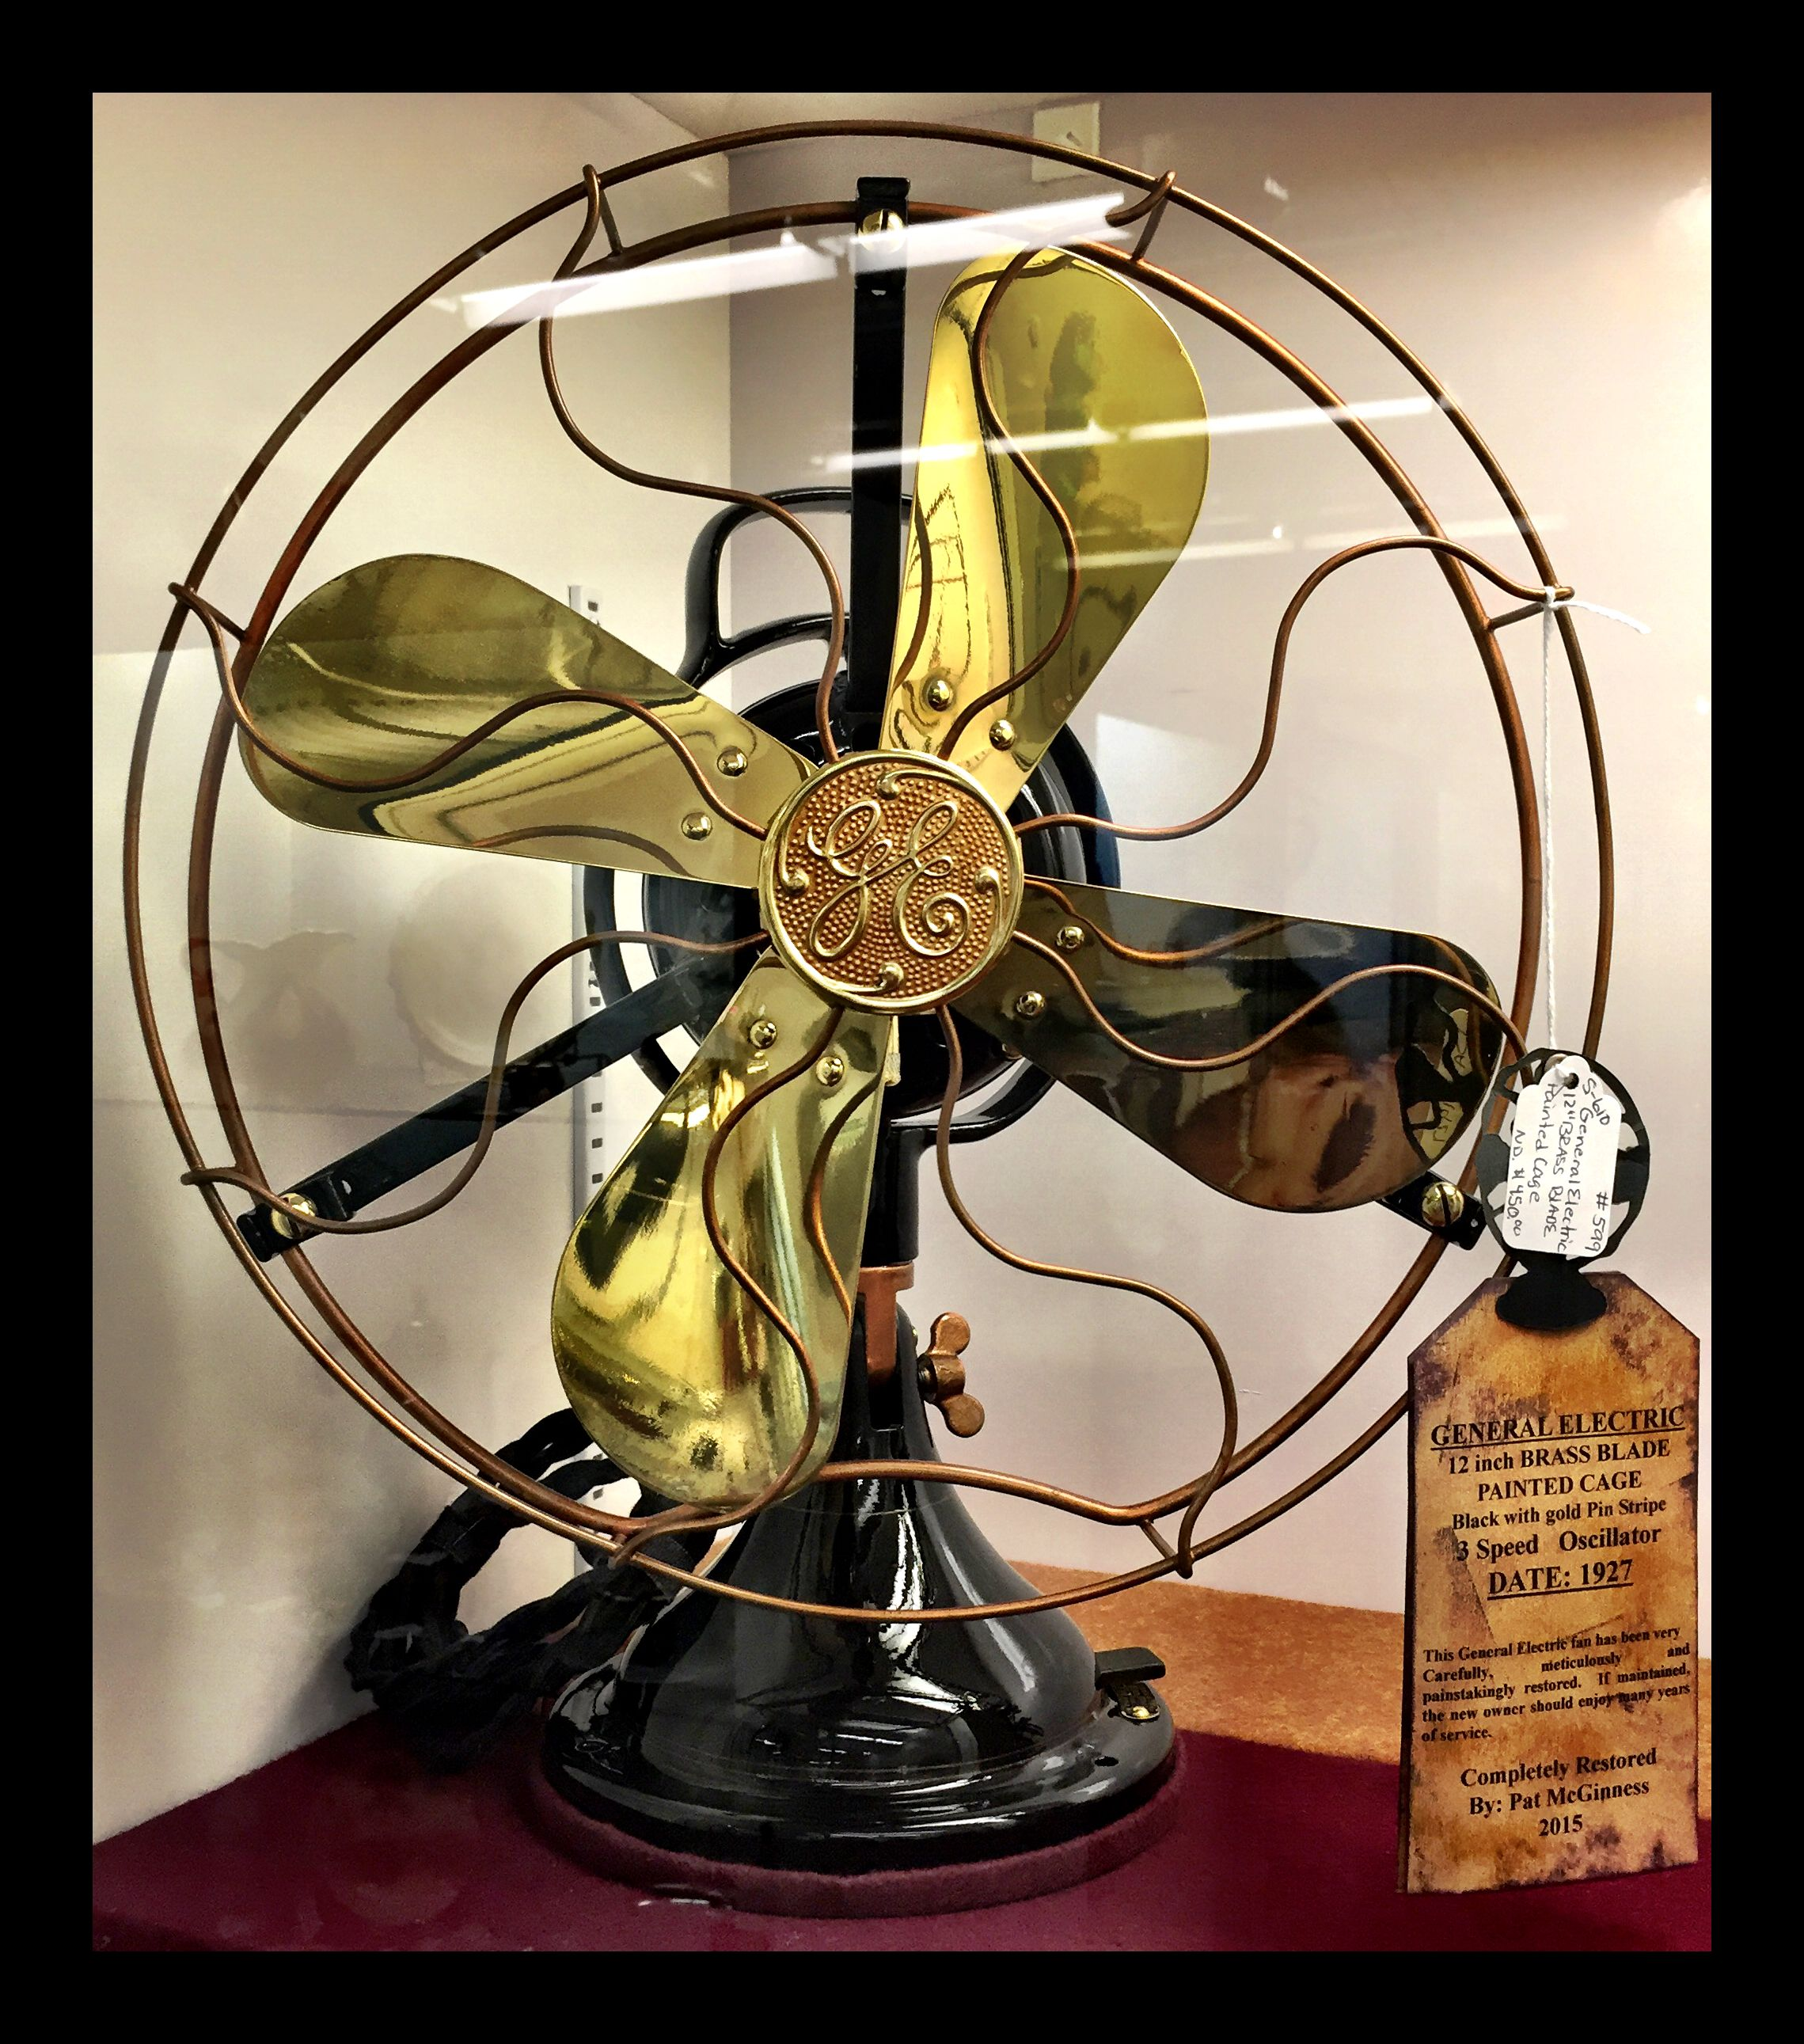 General Electric 12 Inch Brass Blade Painted Cage Fan Date 1927 Completely Restored By Pat Mcginness 450 00 Gaslamp Ant Antique Fans Vintage Fans Antiques